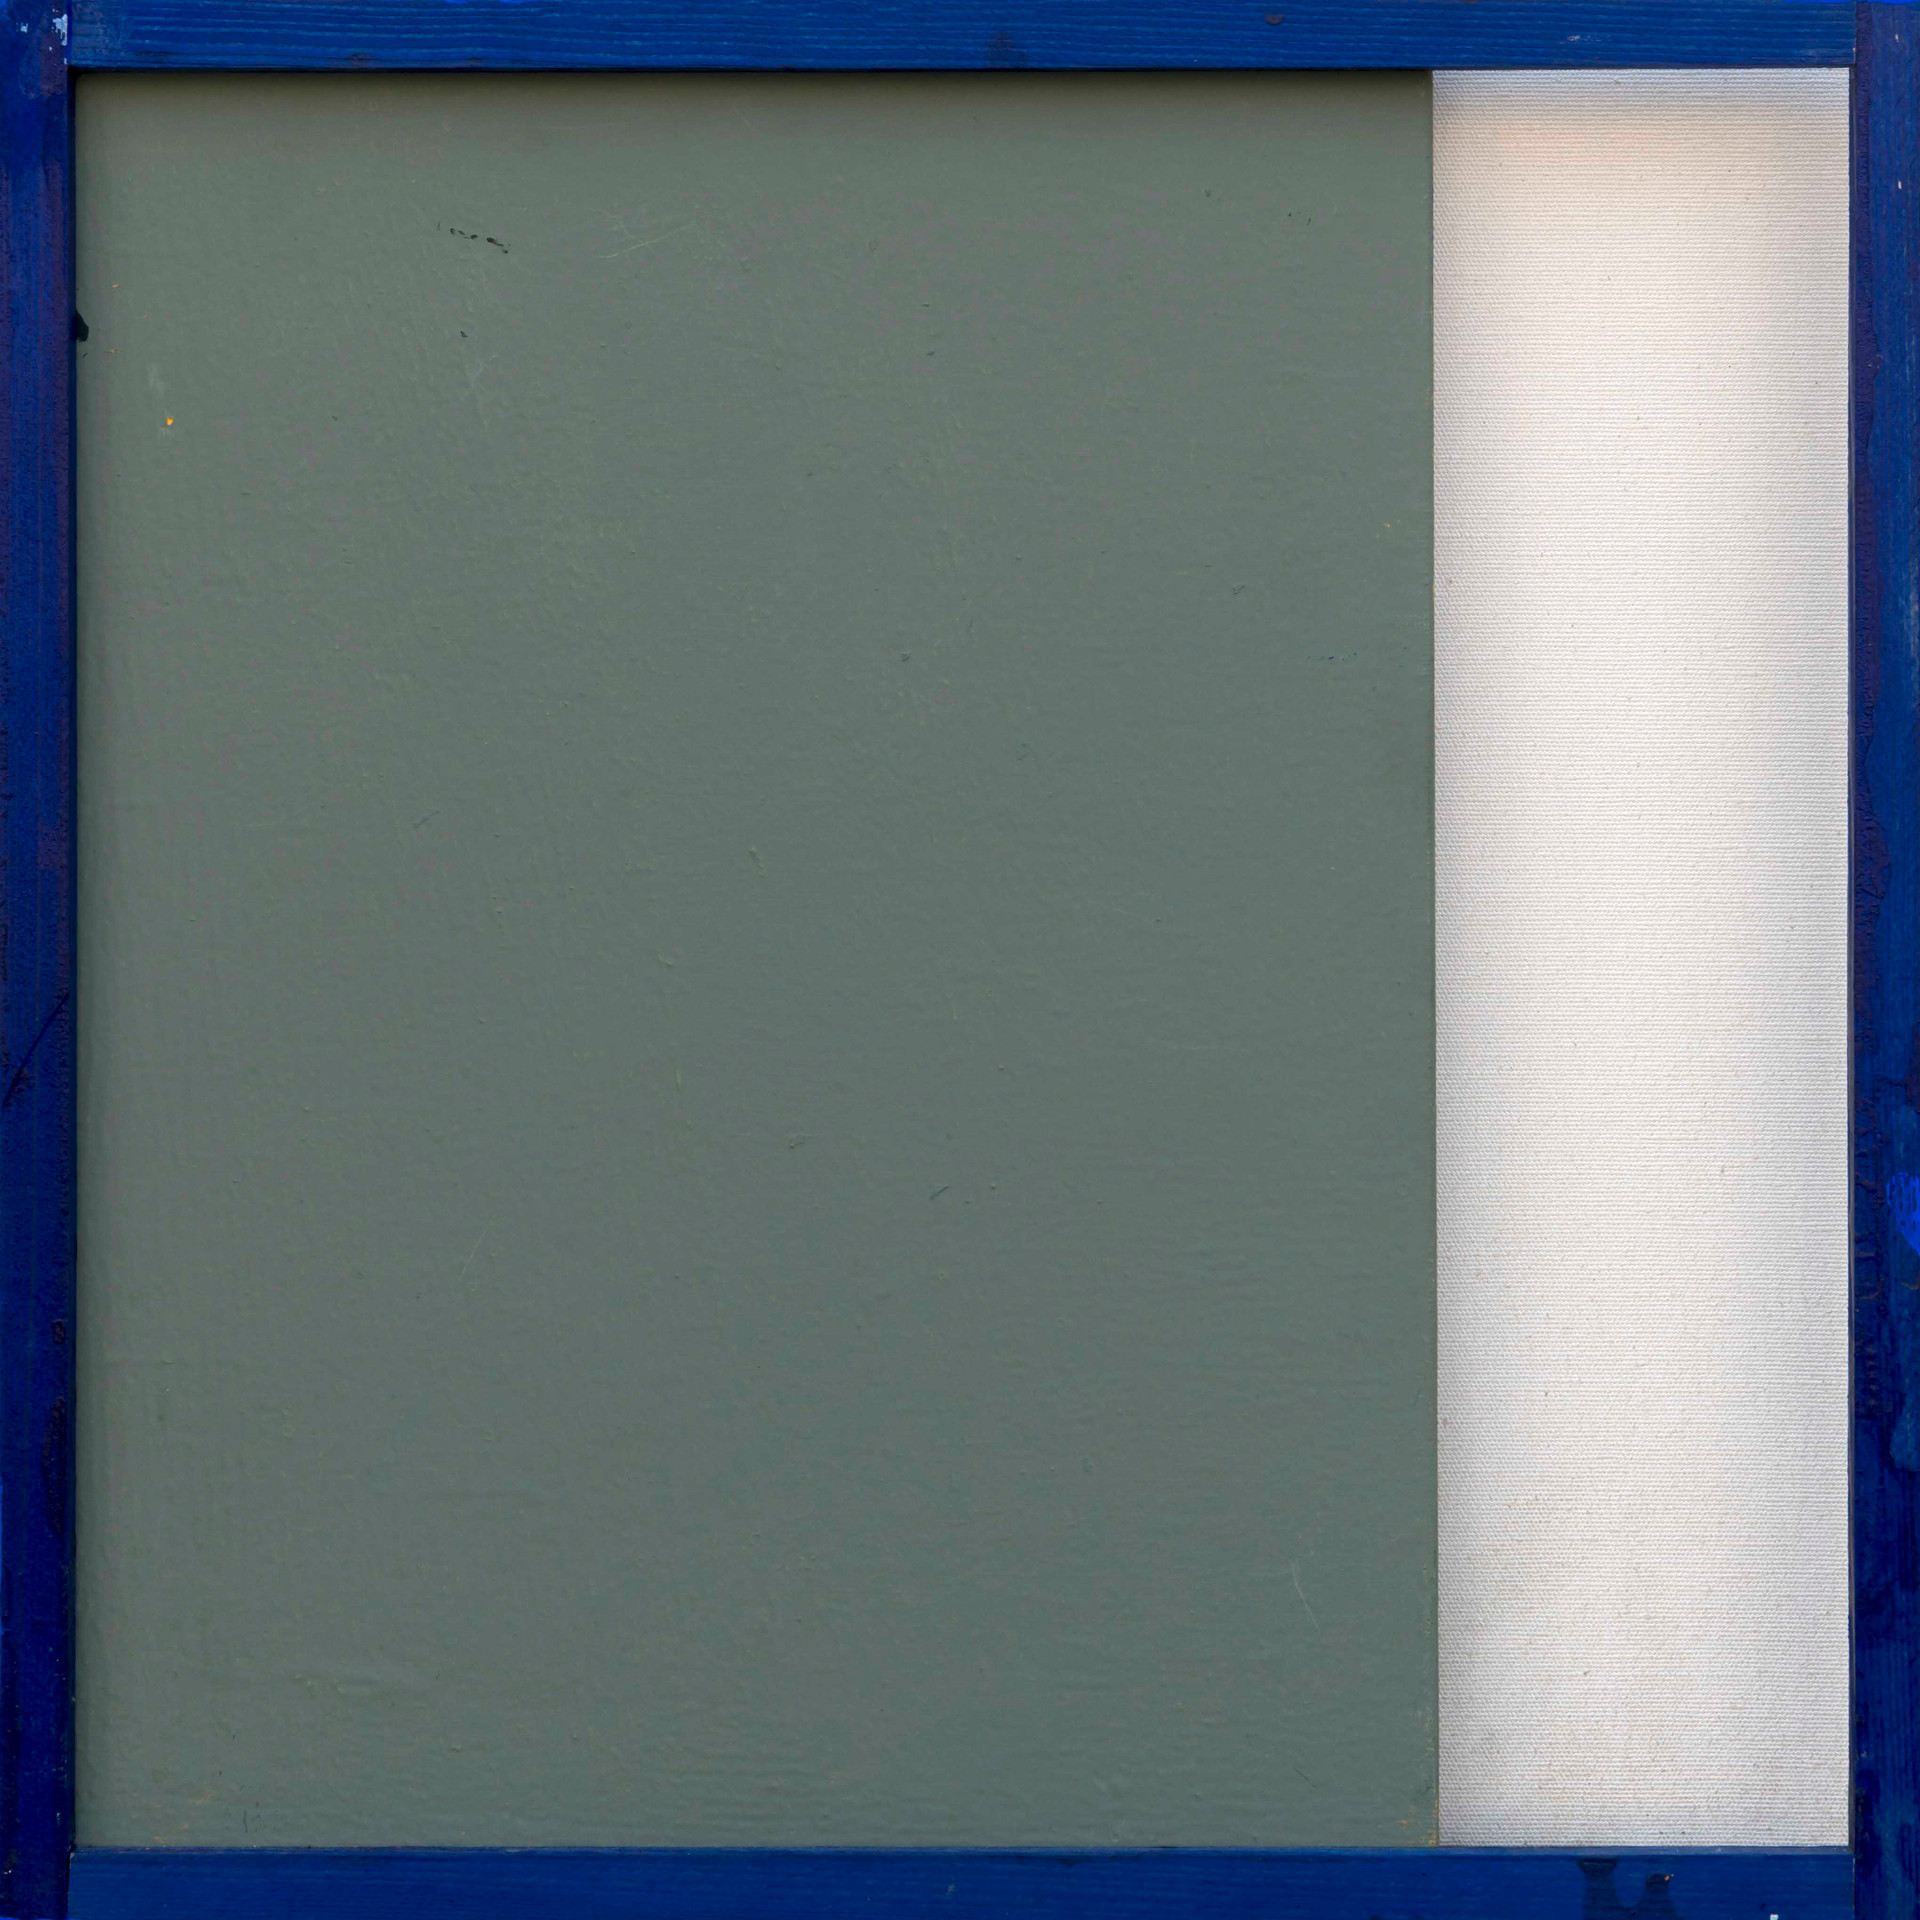 'Inn Series' Wall paint and Blue painted